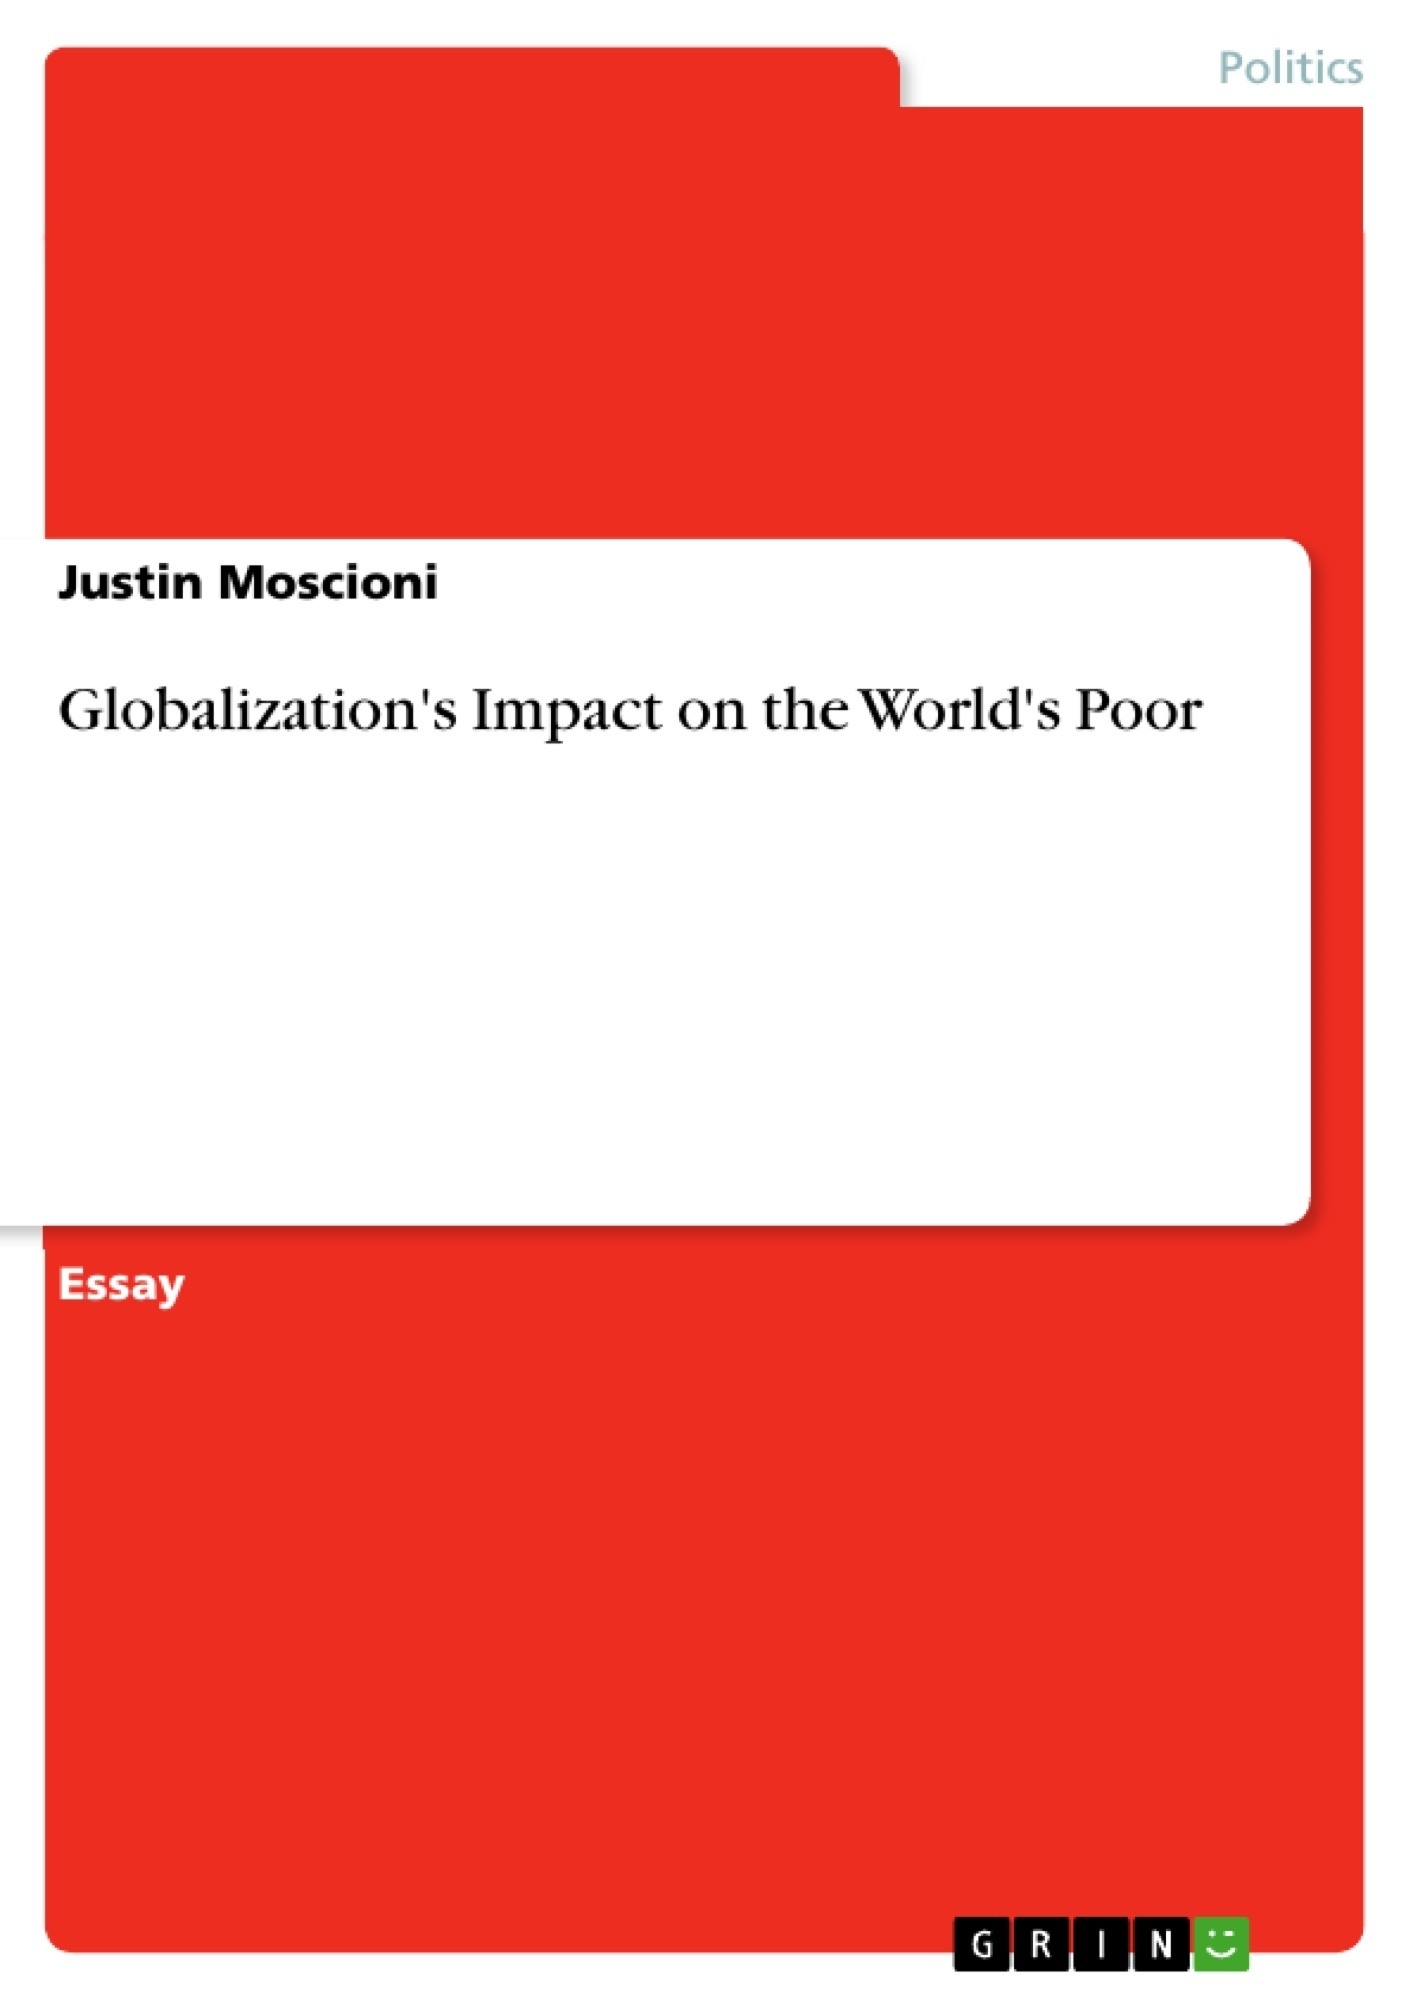 Title: Globalization's Impact on the World's Poor